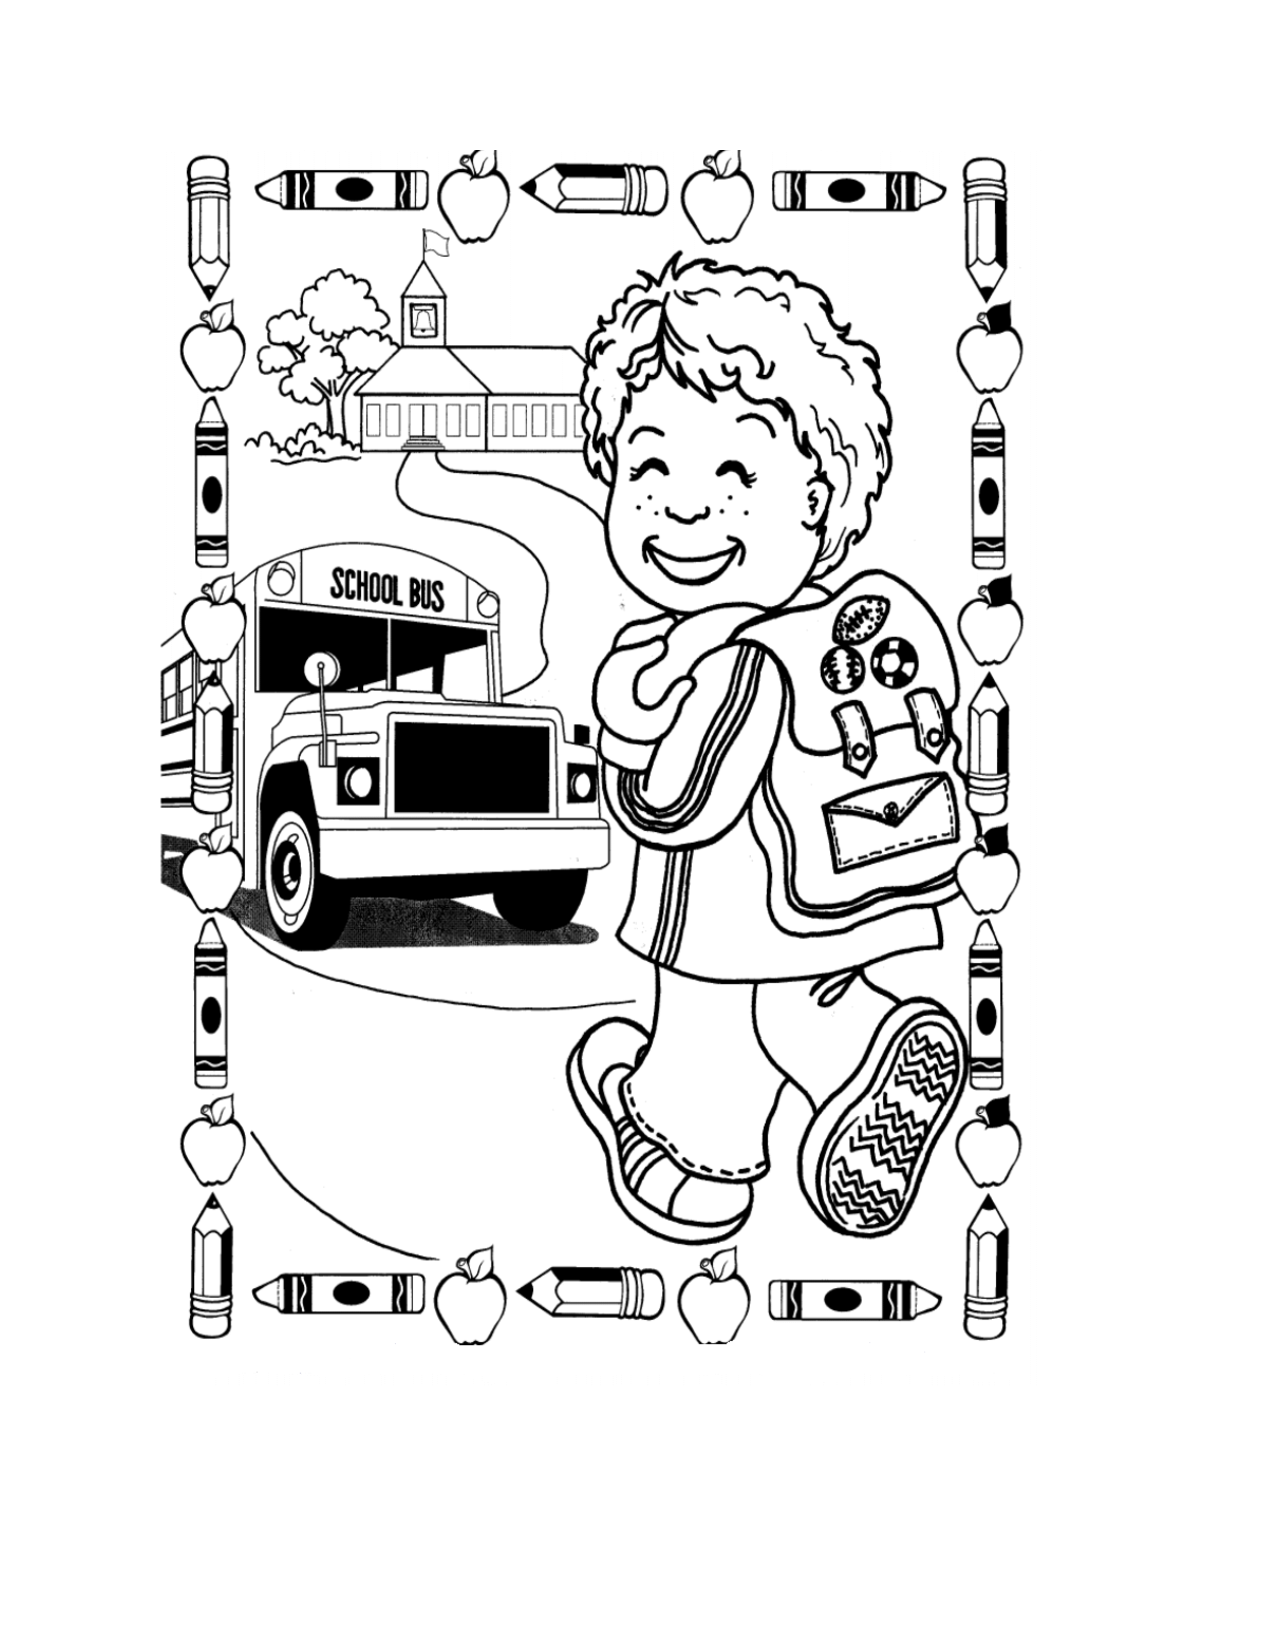 1st grade coloring pages multiplication coloring pages 4th grade free download on pages 1st coloring grade